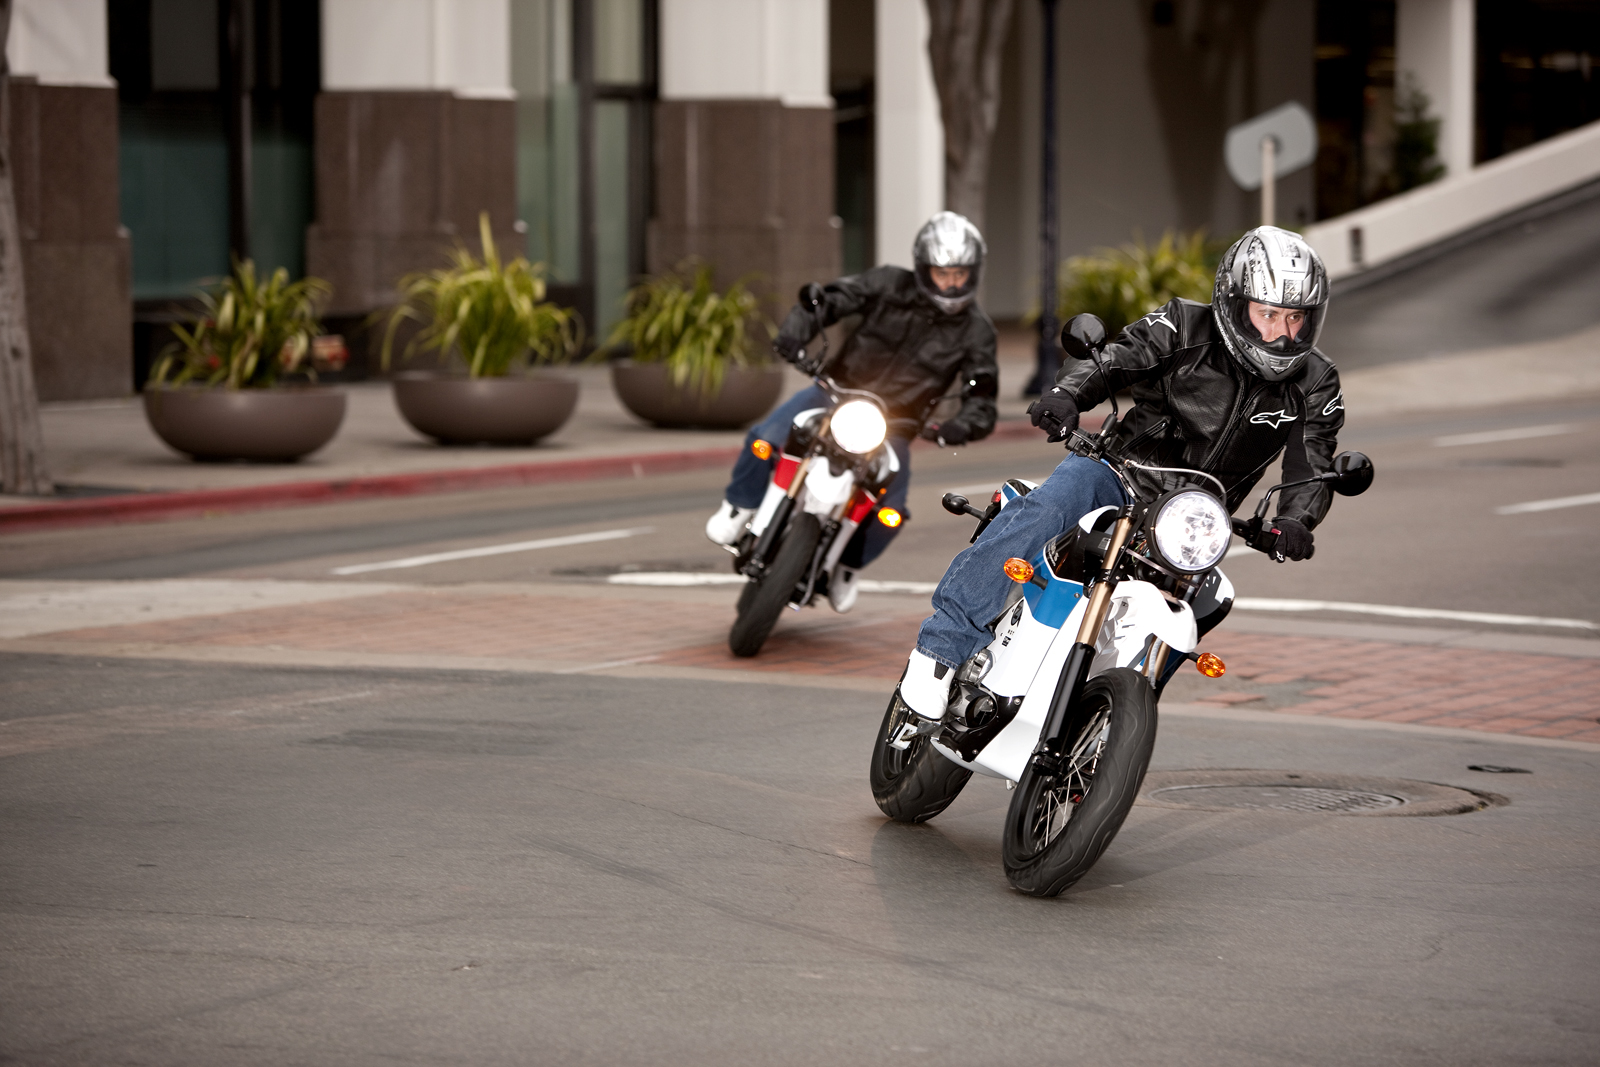 2010 Zero S Electric Motorcycle: San Diego - Sideways Around Corner